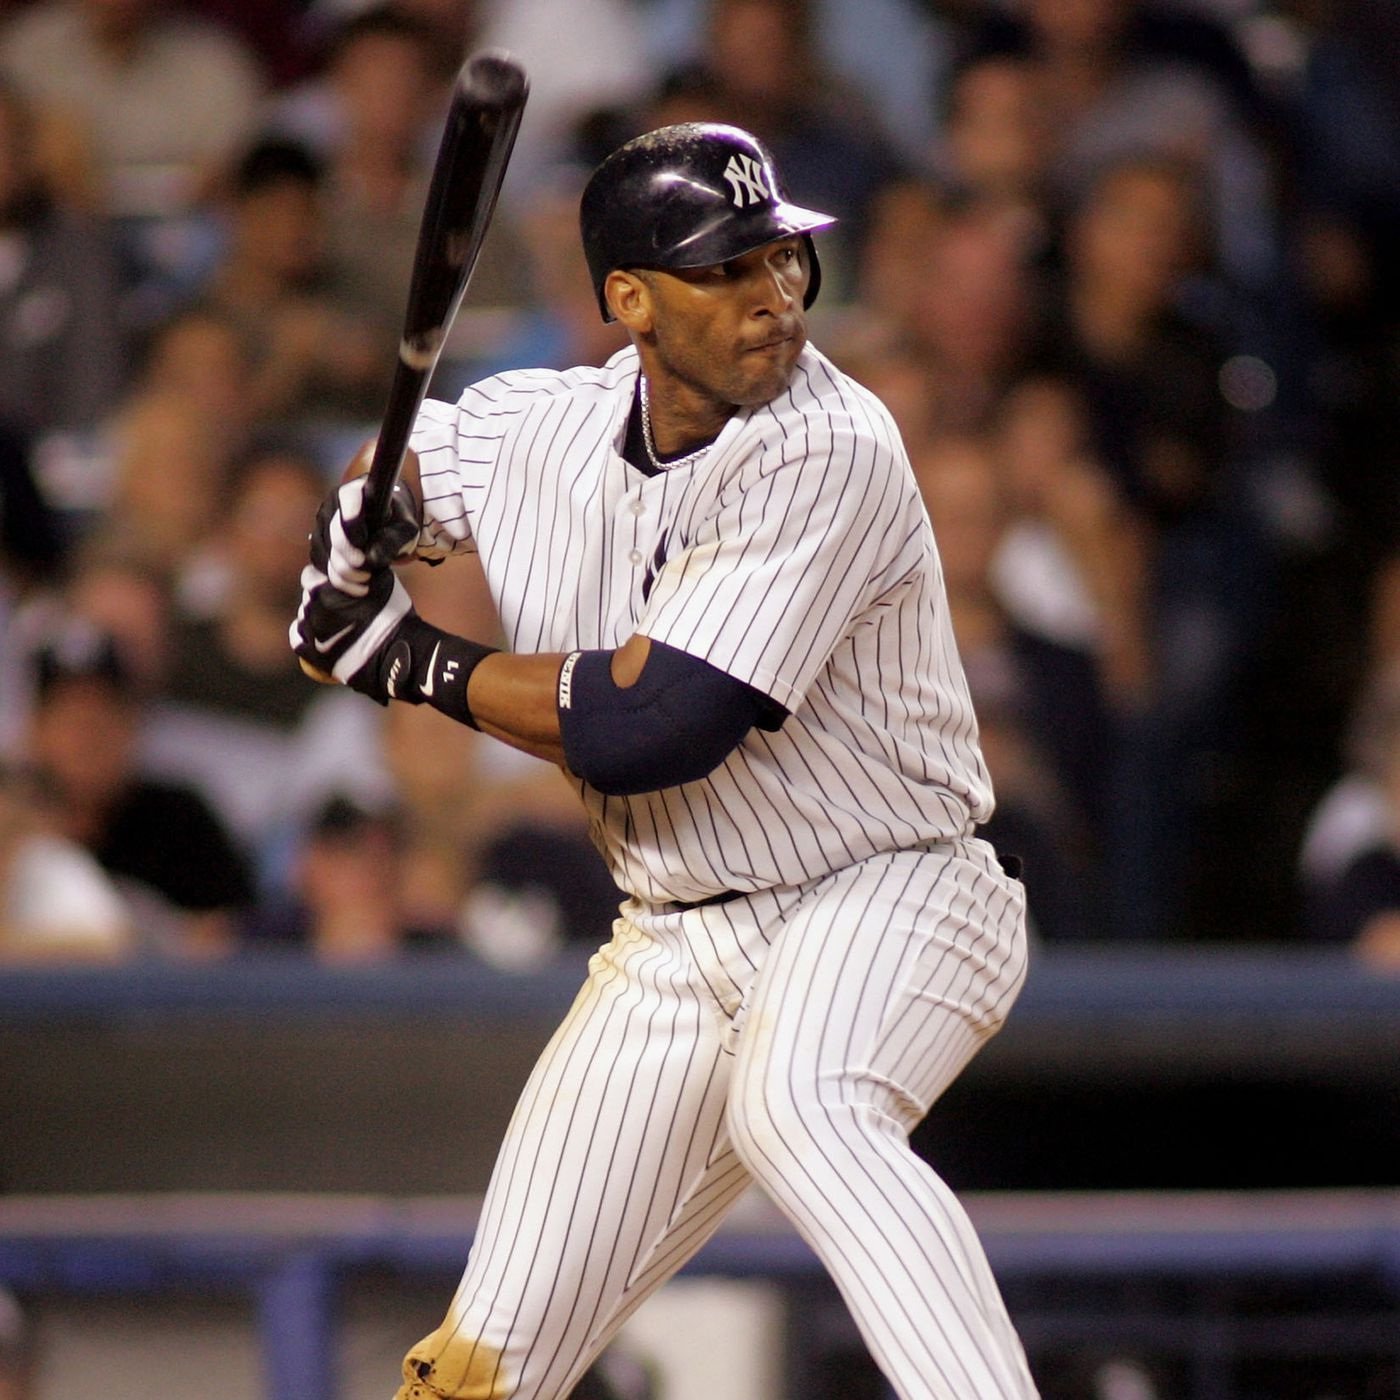 Remembering the weirdest batting stances in Yankee history ...